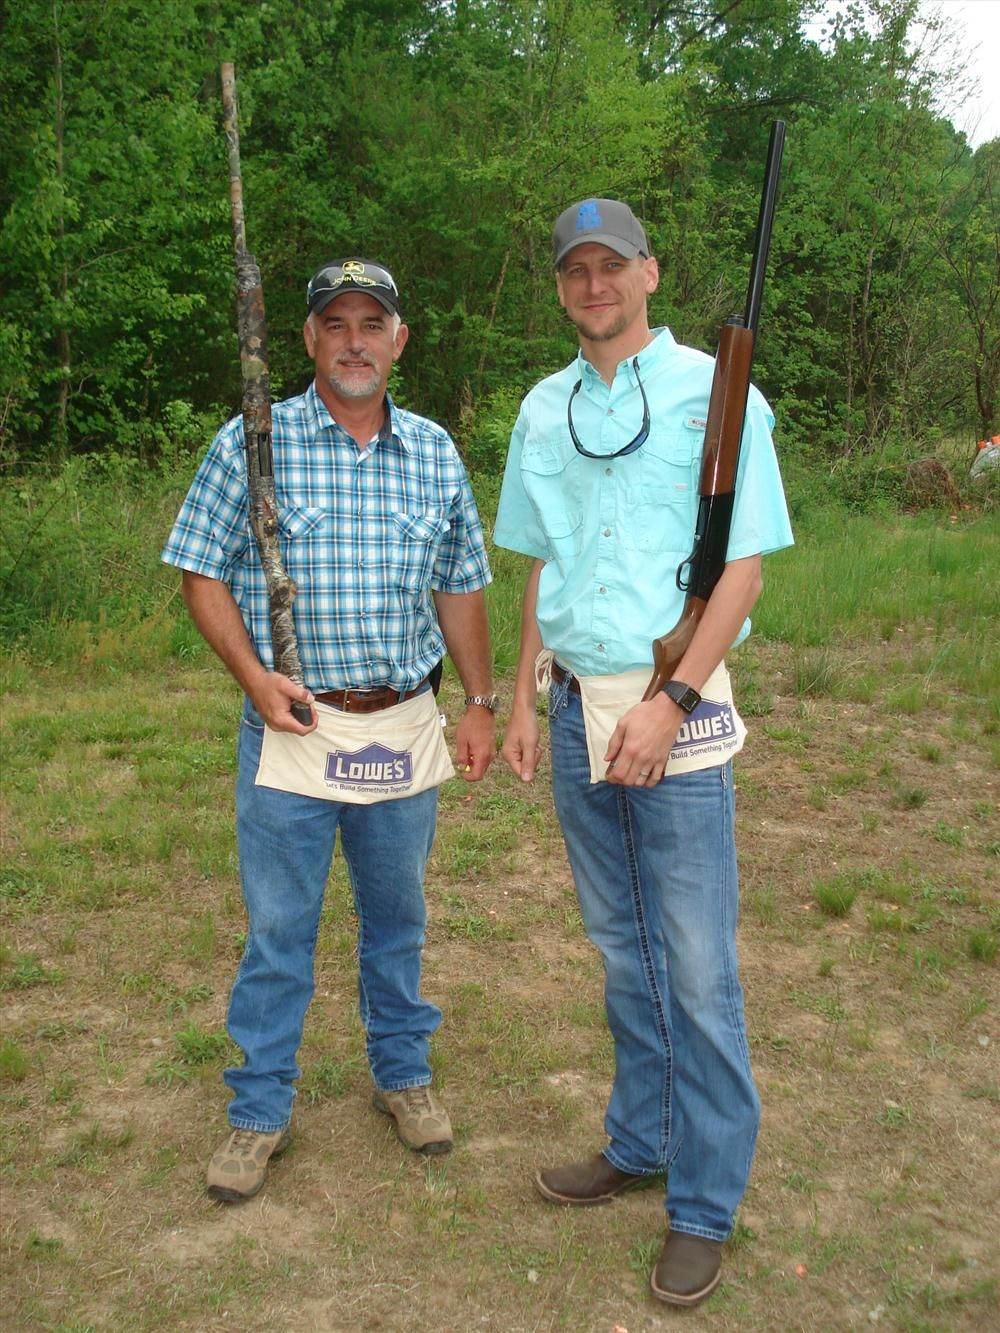 Judge Avery (L) and Damien Hollifield, both of Young & McQueen Grading Inc. in Burnsville, N.C., enjoy the day.